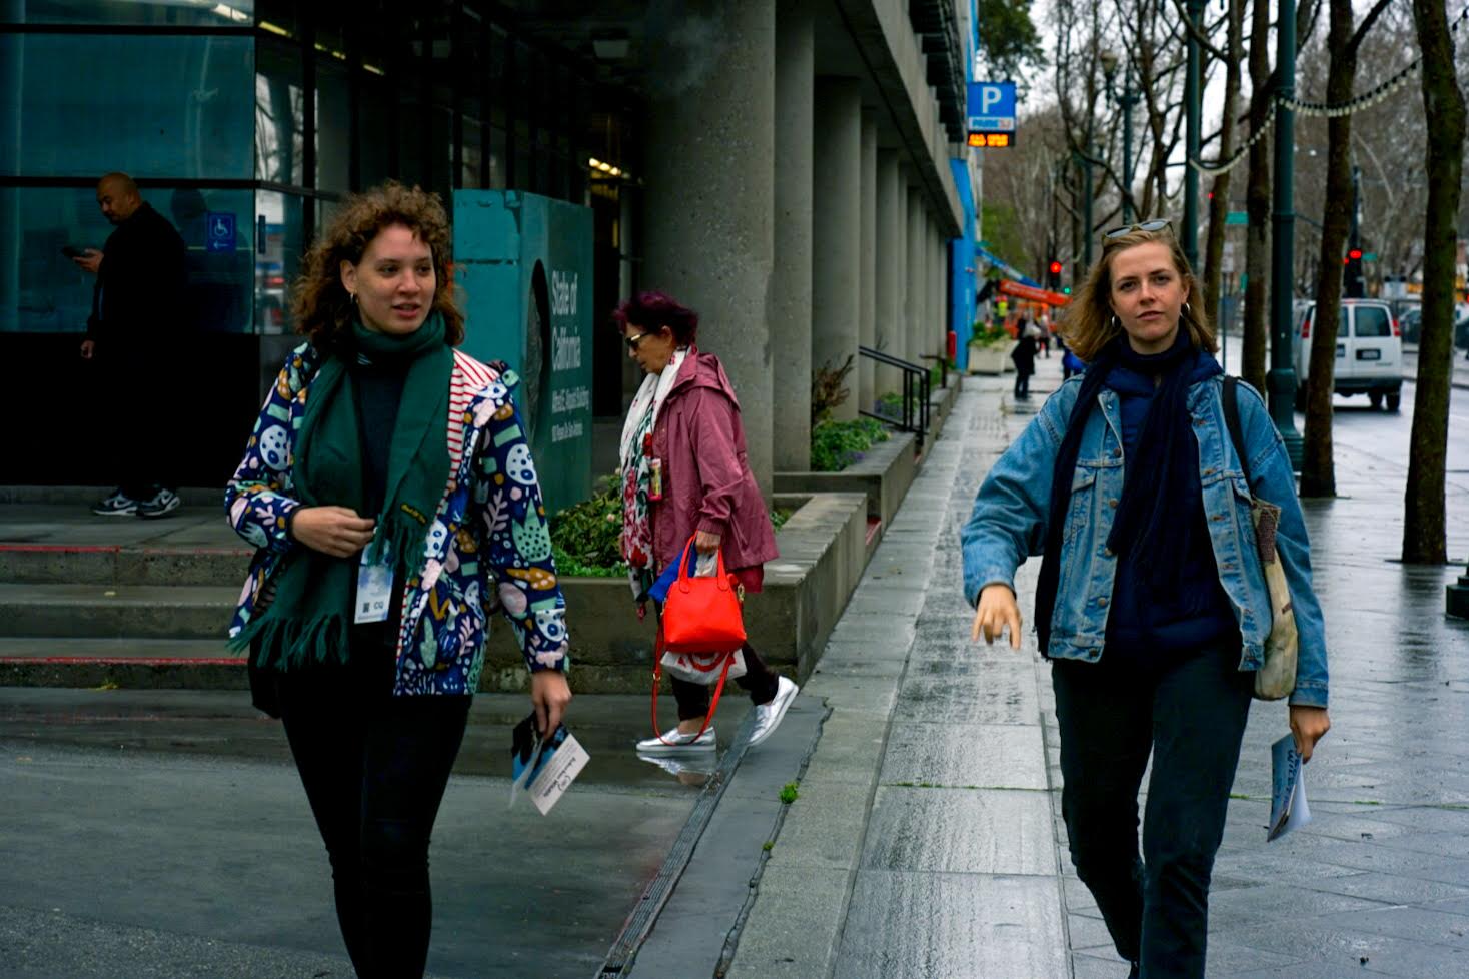 Imy and Bea on the street_GV.png